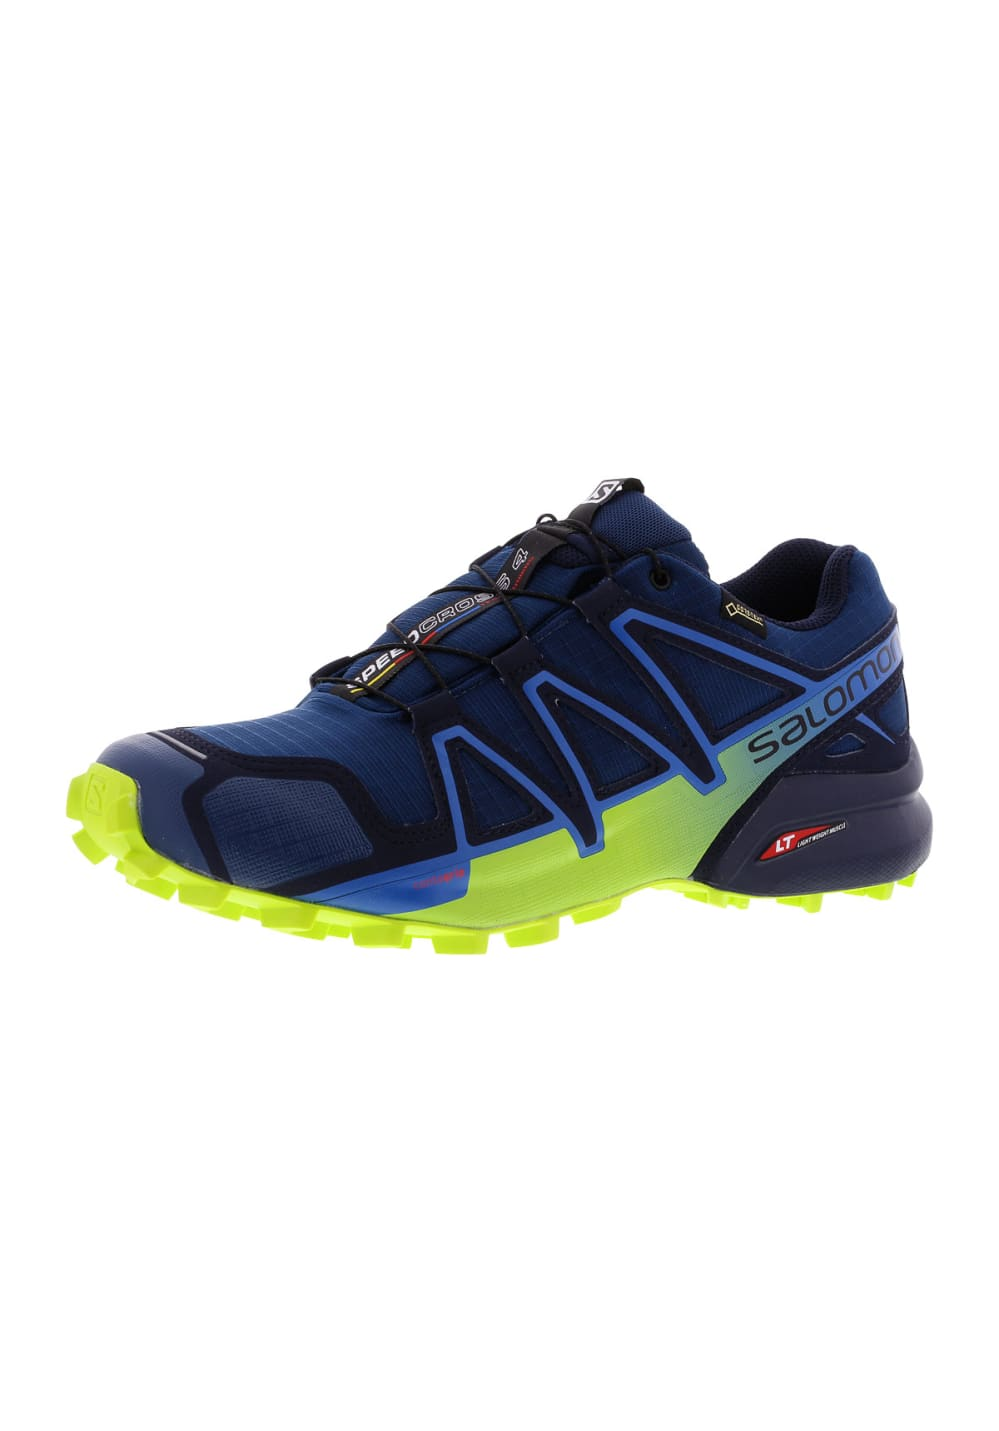 san francisco 59196 6681b Next. New. Salomon. Speedcross 4 GTX - Chaussures running pour Homme